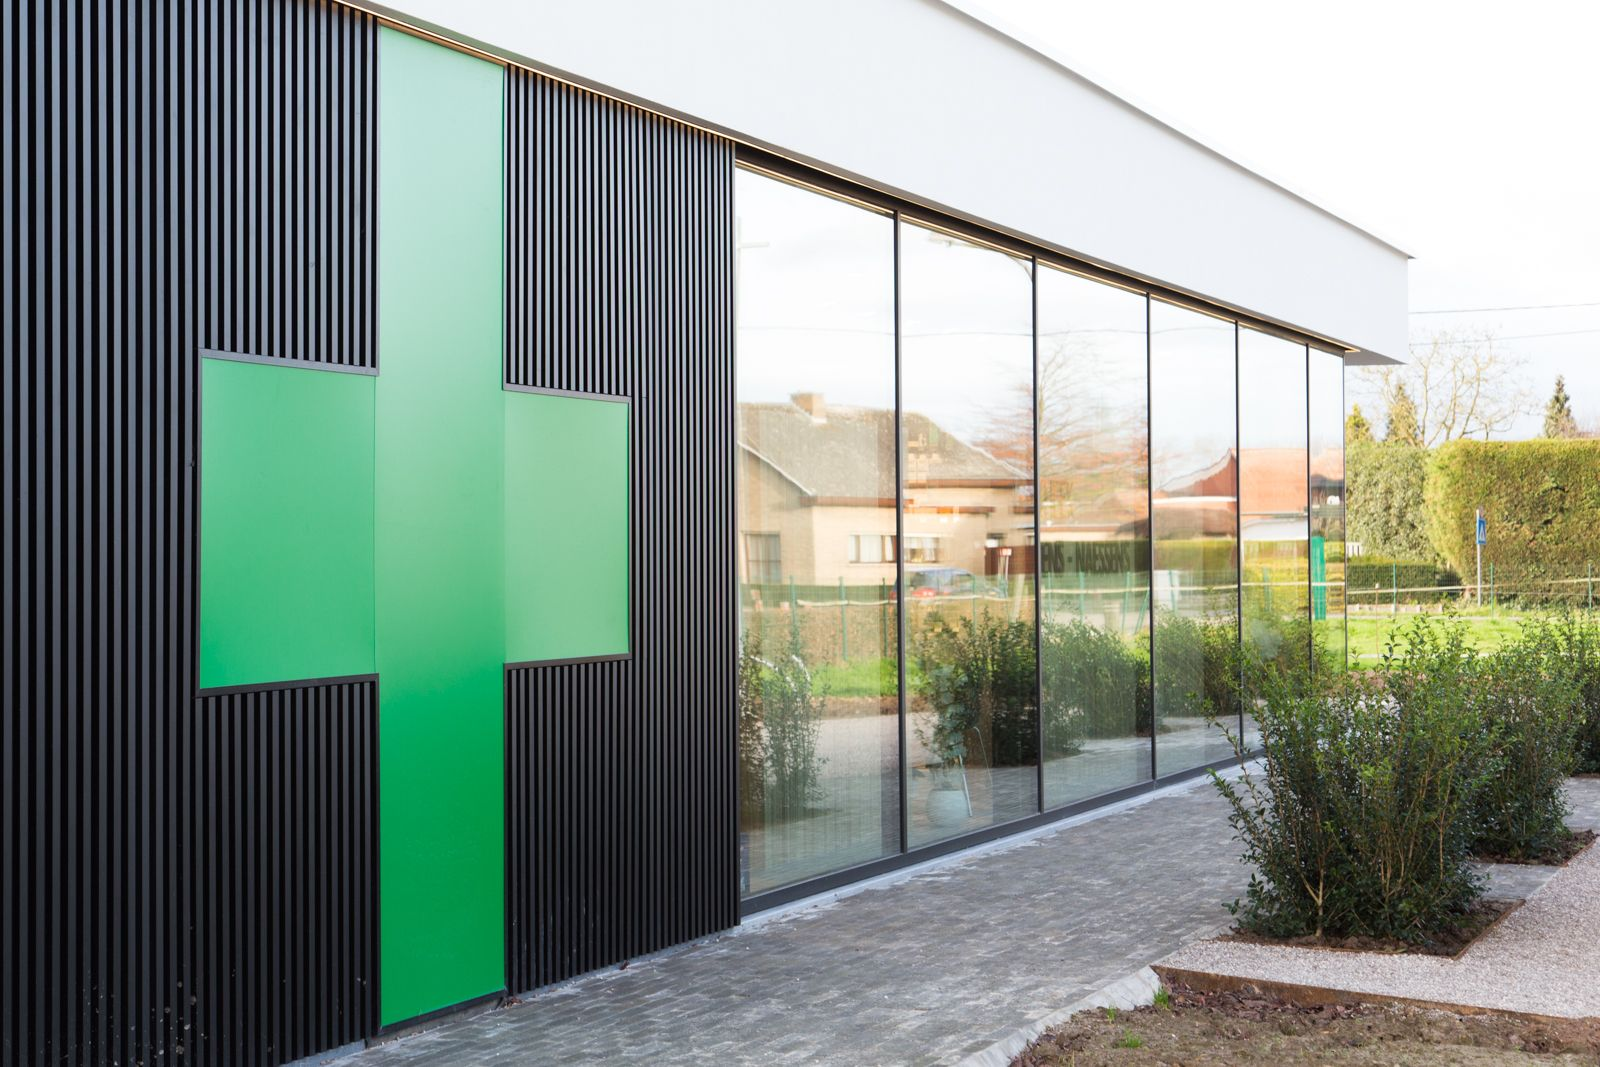 Apotheek pharmacy inrichting design schevenels for Design inrichting